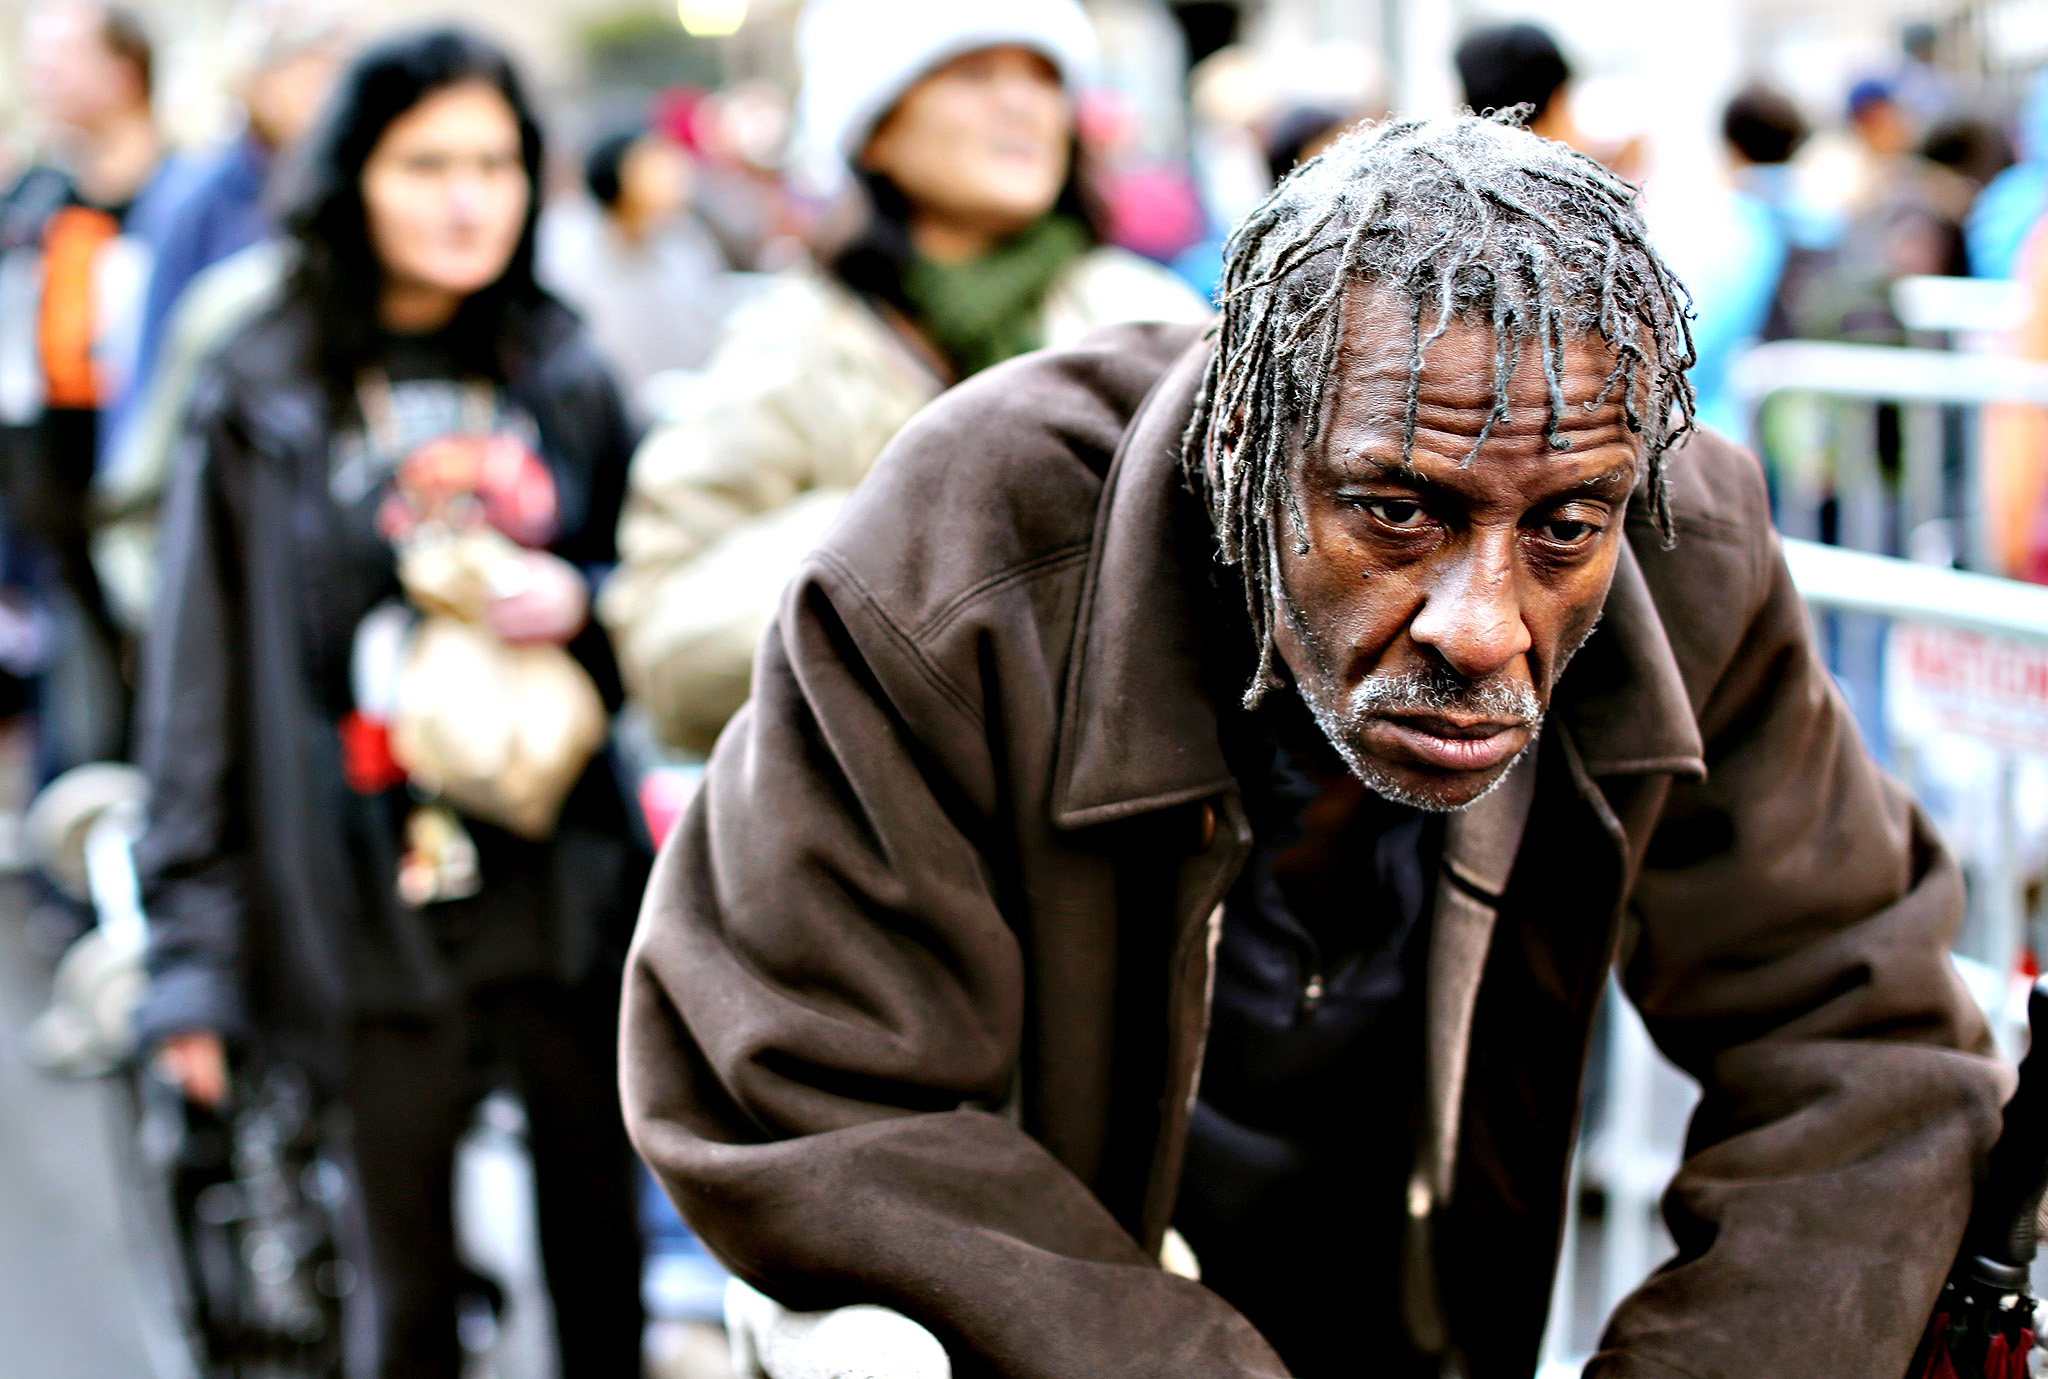 A man waits in line for one of 5,000 holiday food bags provided at Glide Memorial Church in the Tenderloin neighborhood in San Francisco, California December 17, 2014. Glide's foundation serves a cross-section of homeless and low-income people, and provides a variety of services including free meals.